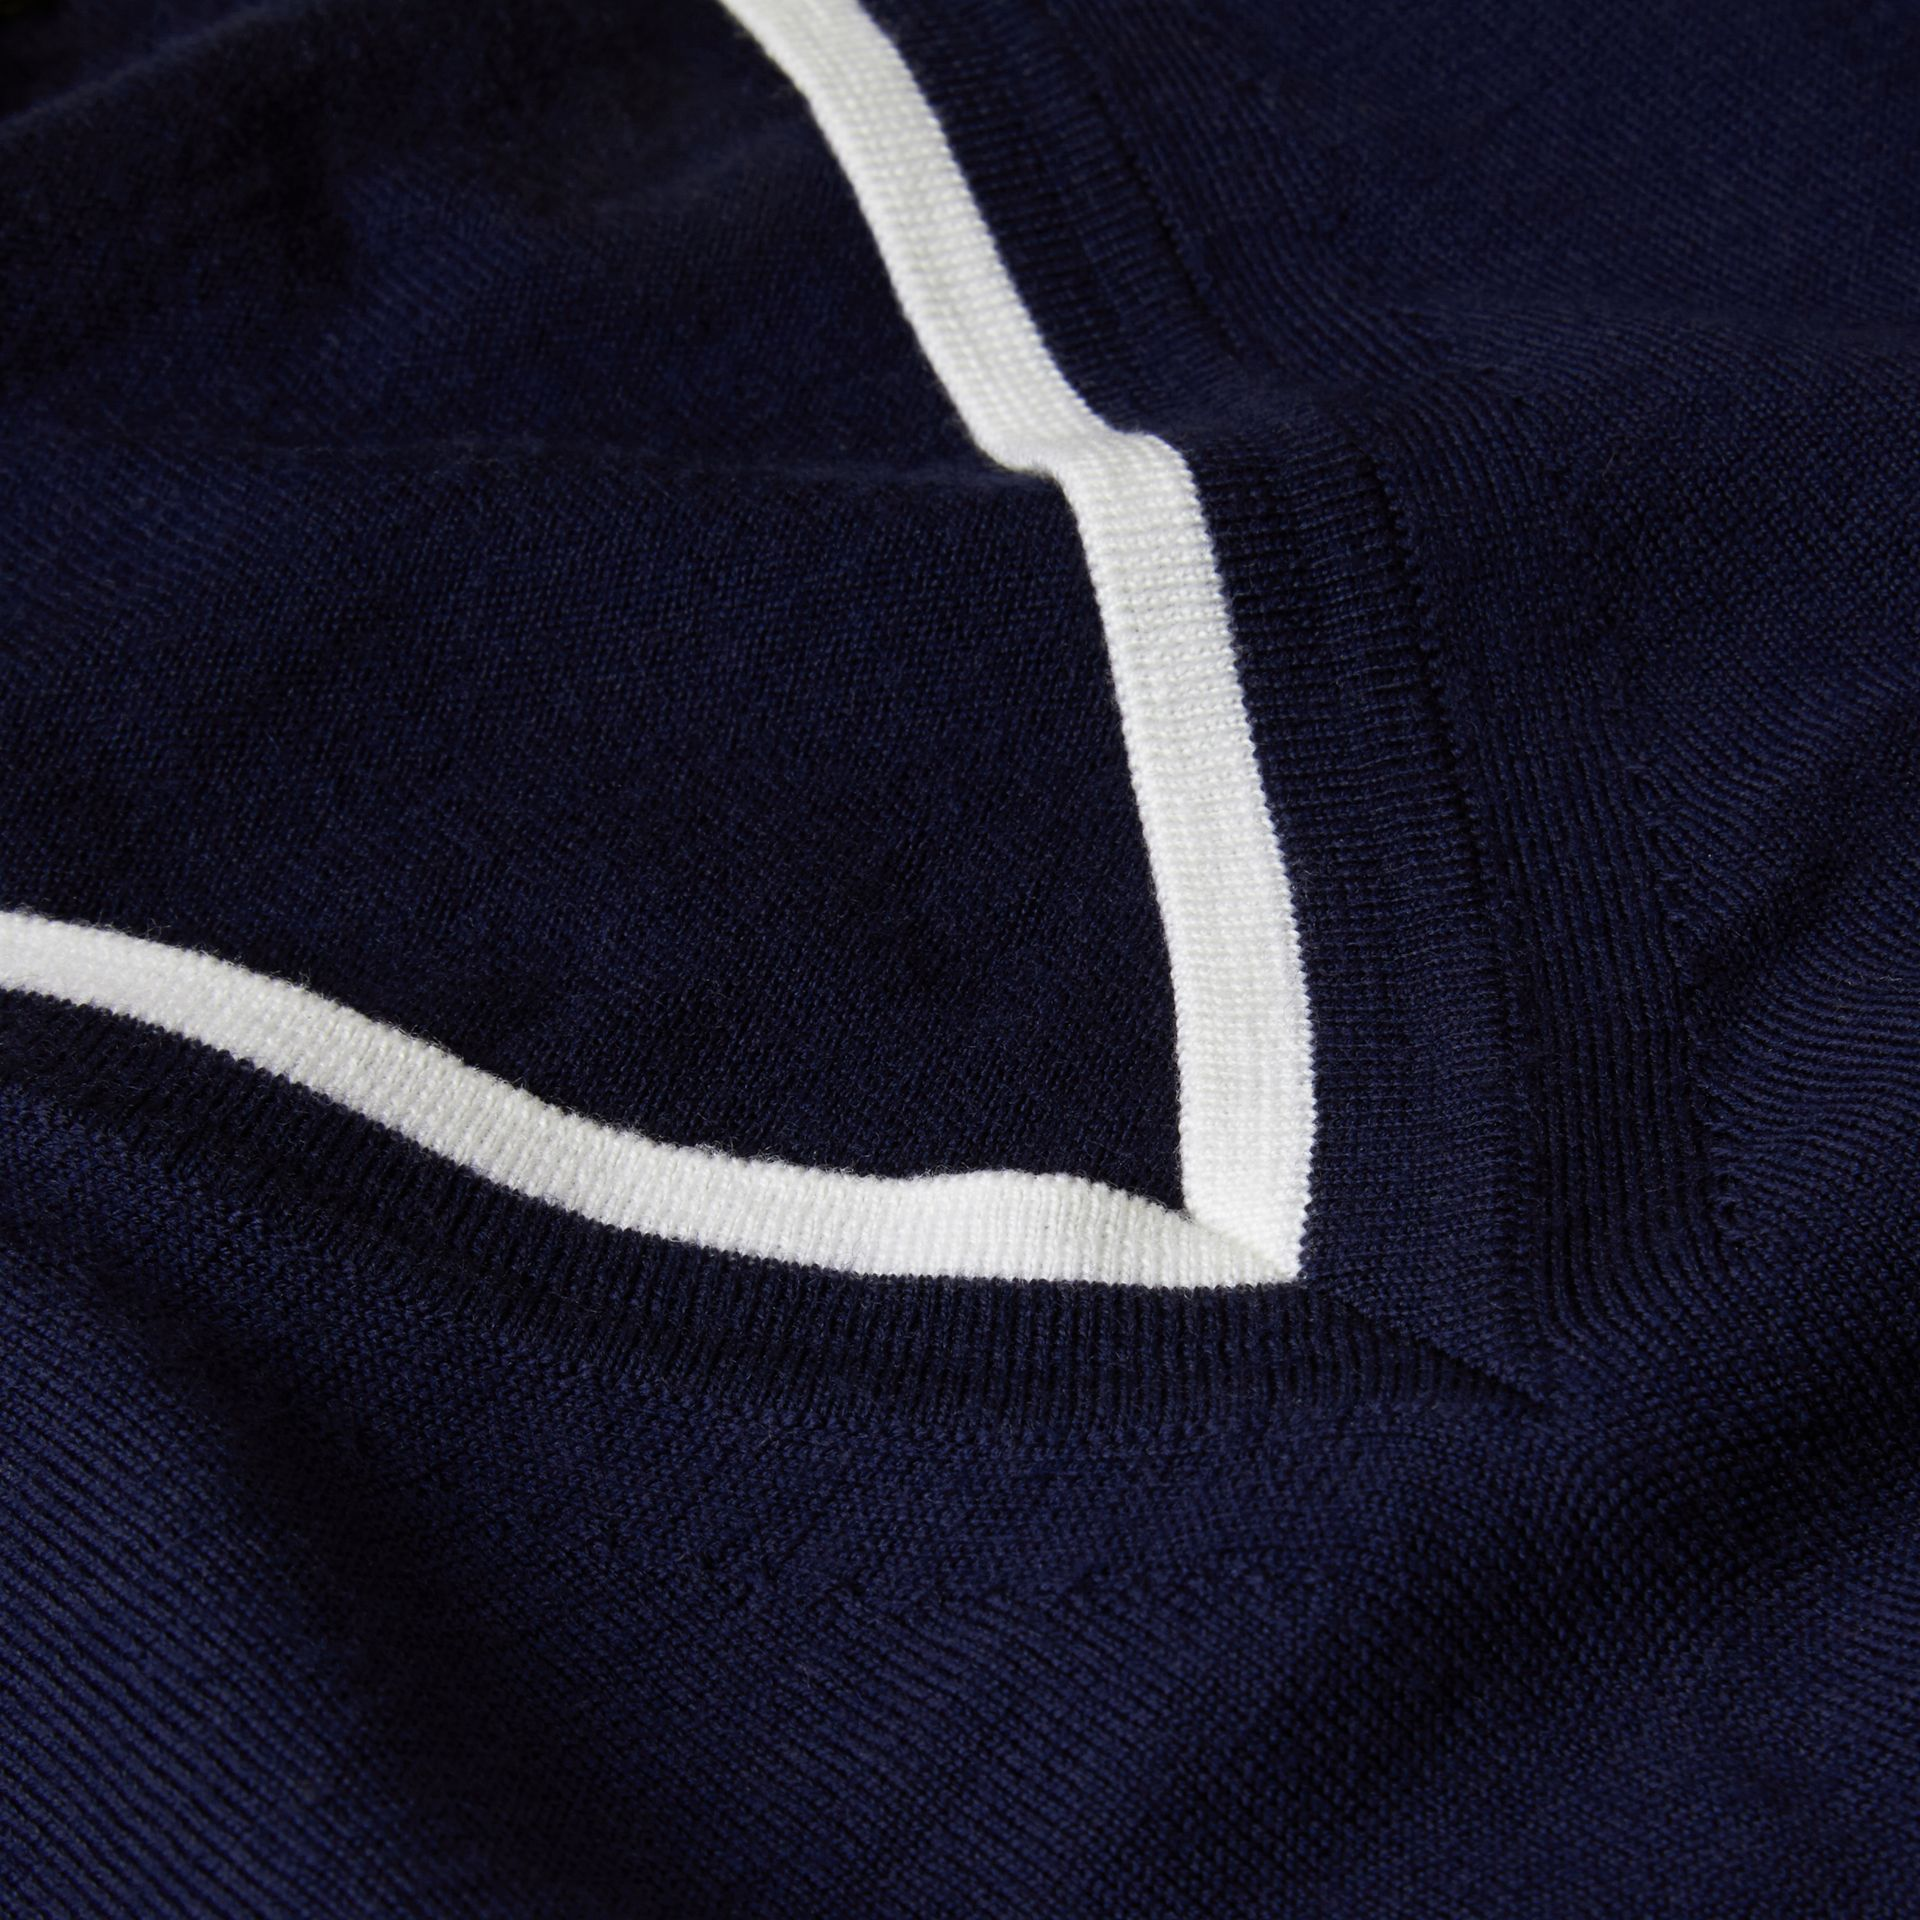 Navy/white Contrast Trim Wool V-neck Sweater - gallery image 2